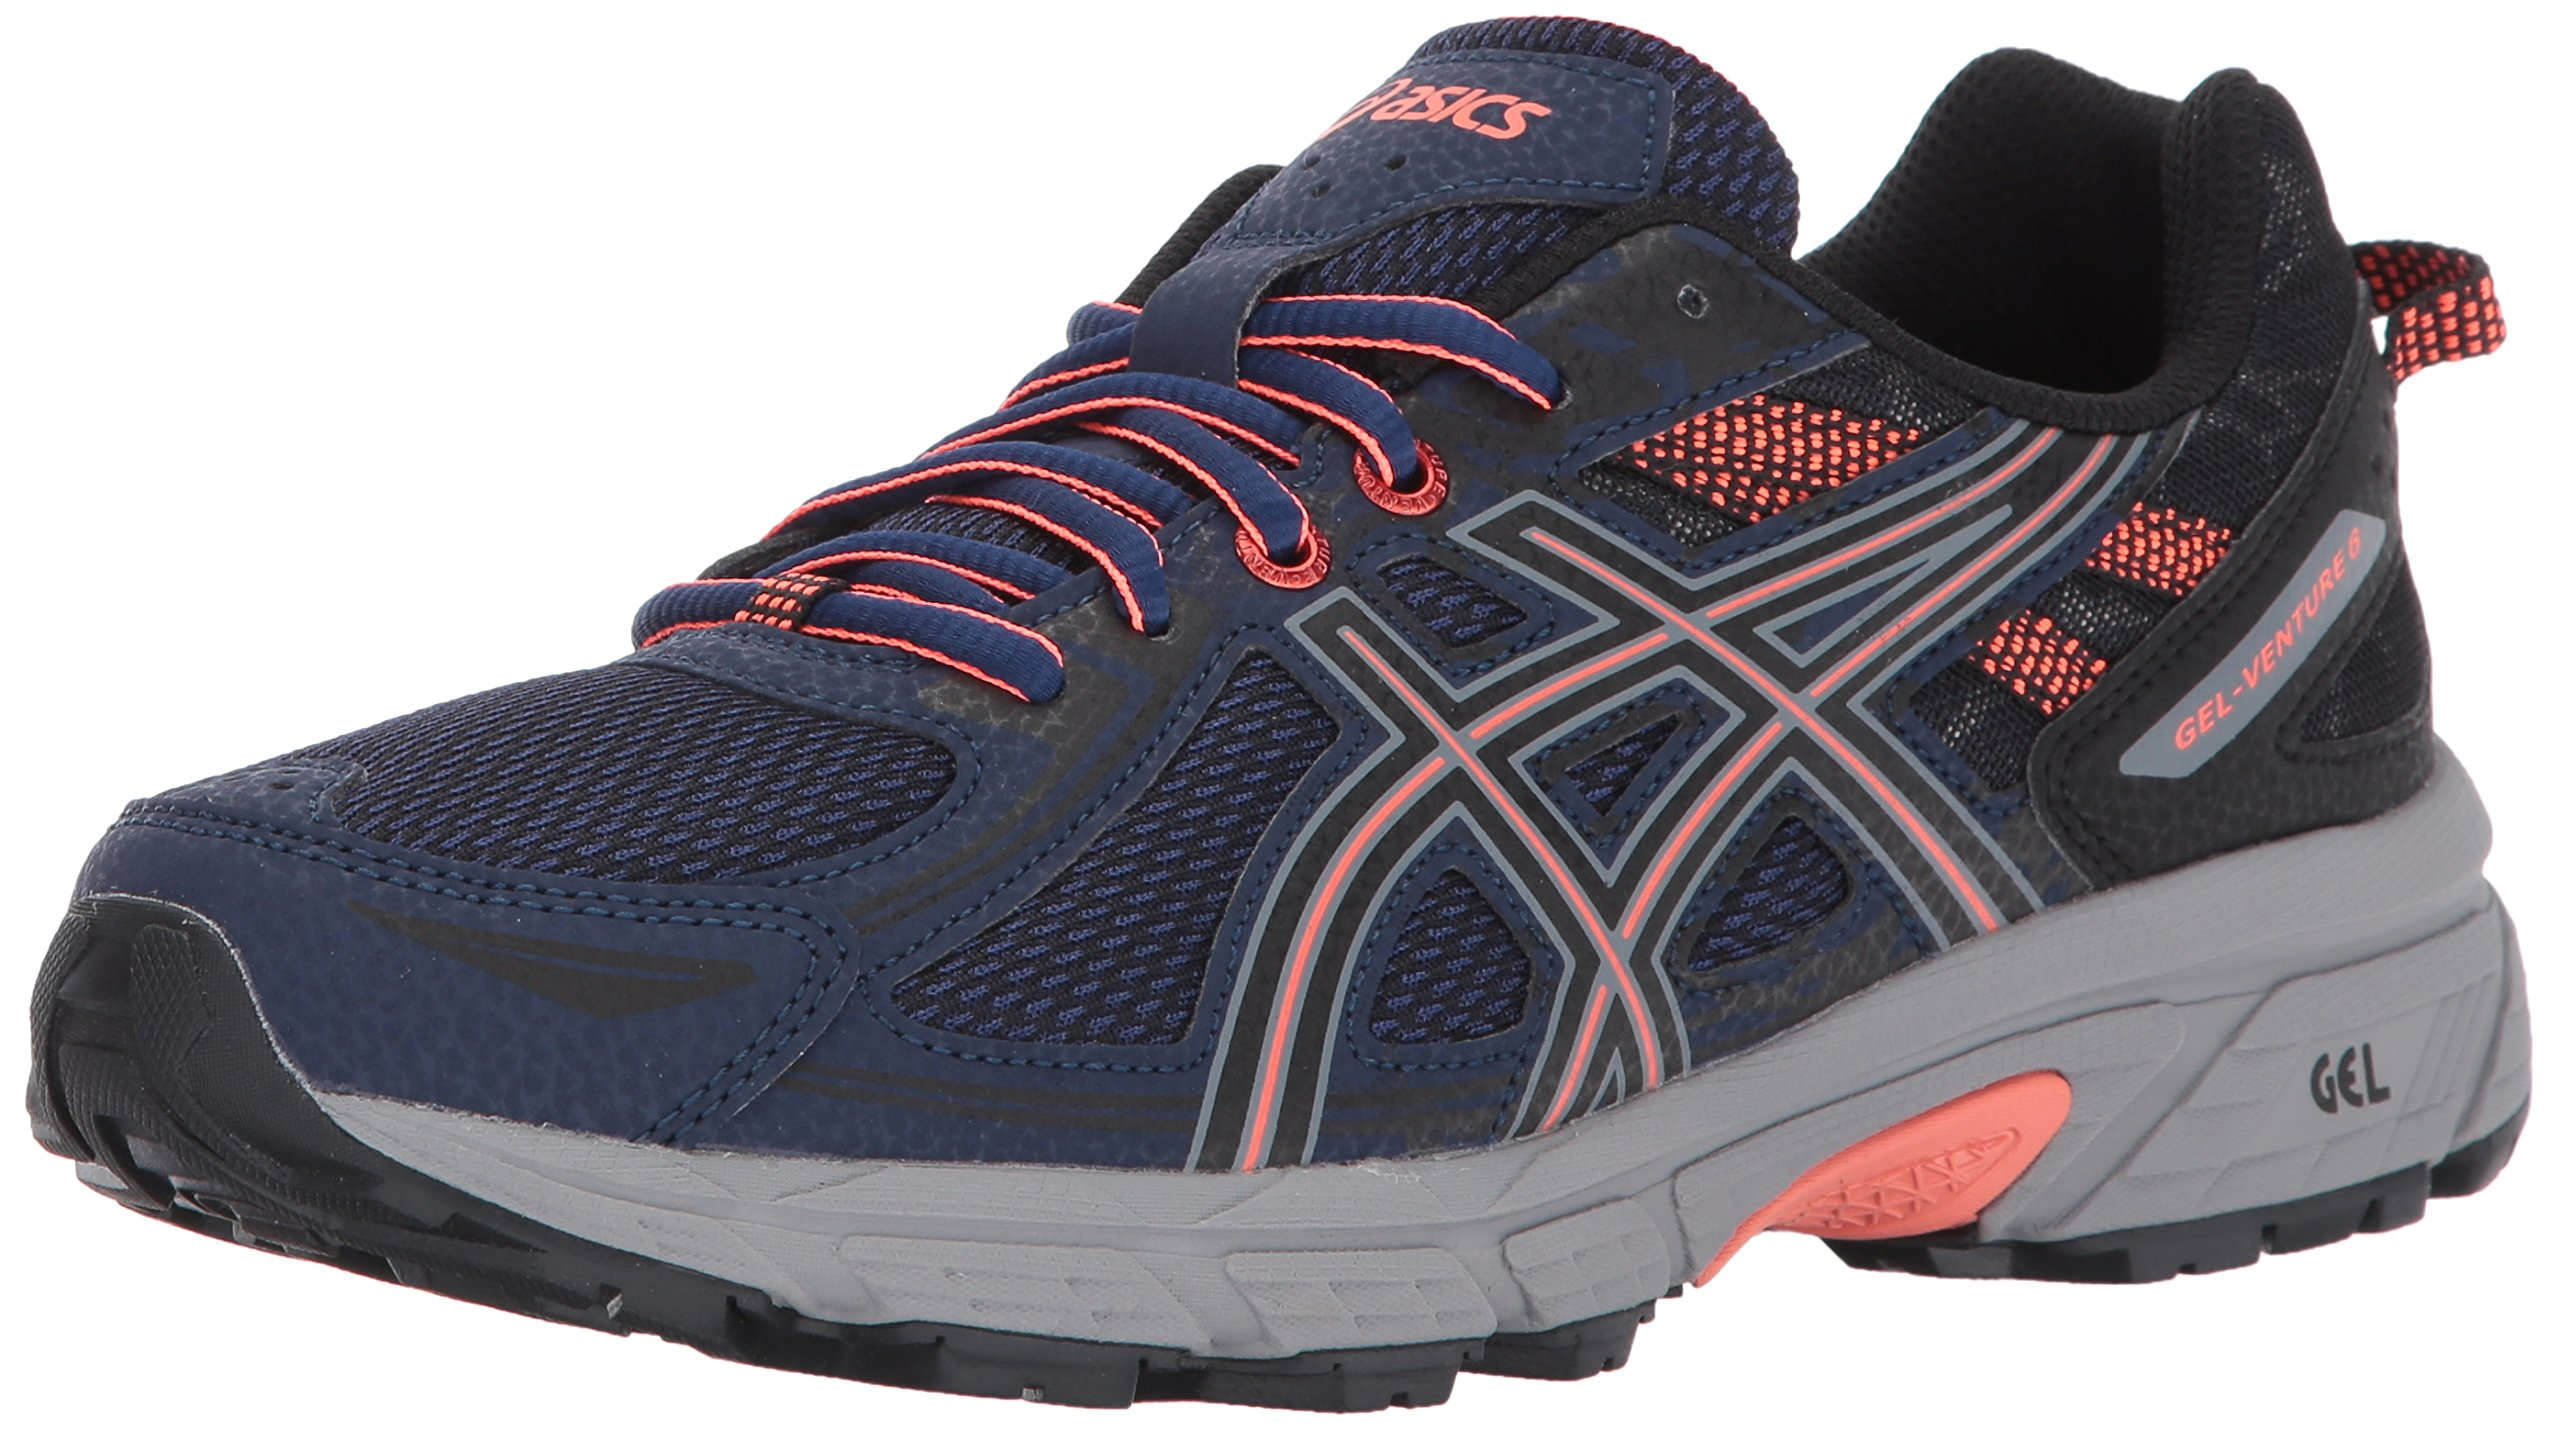 ASICS Women's Gel-Venture 6 Running-Shoes,Indigo Blue/Black/Coral,5 Medium US